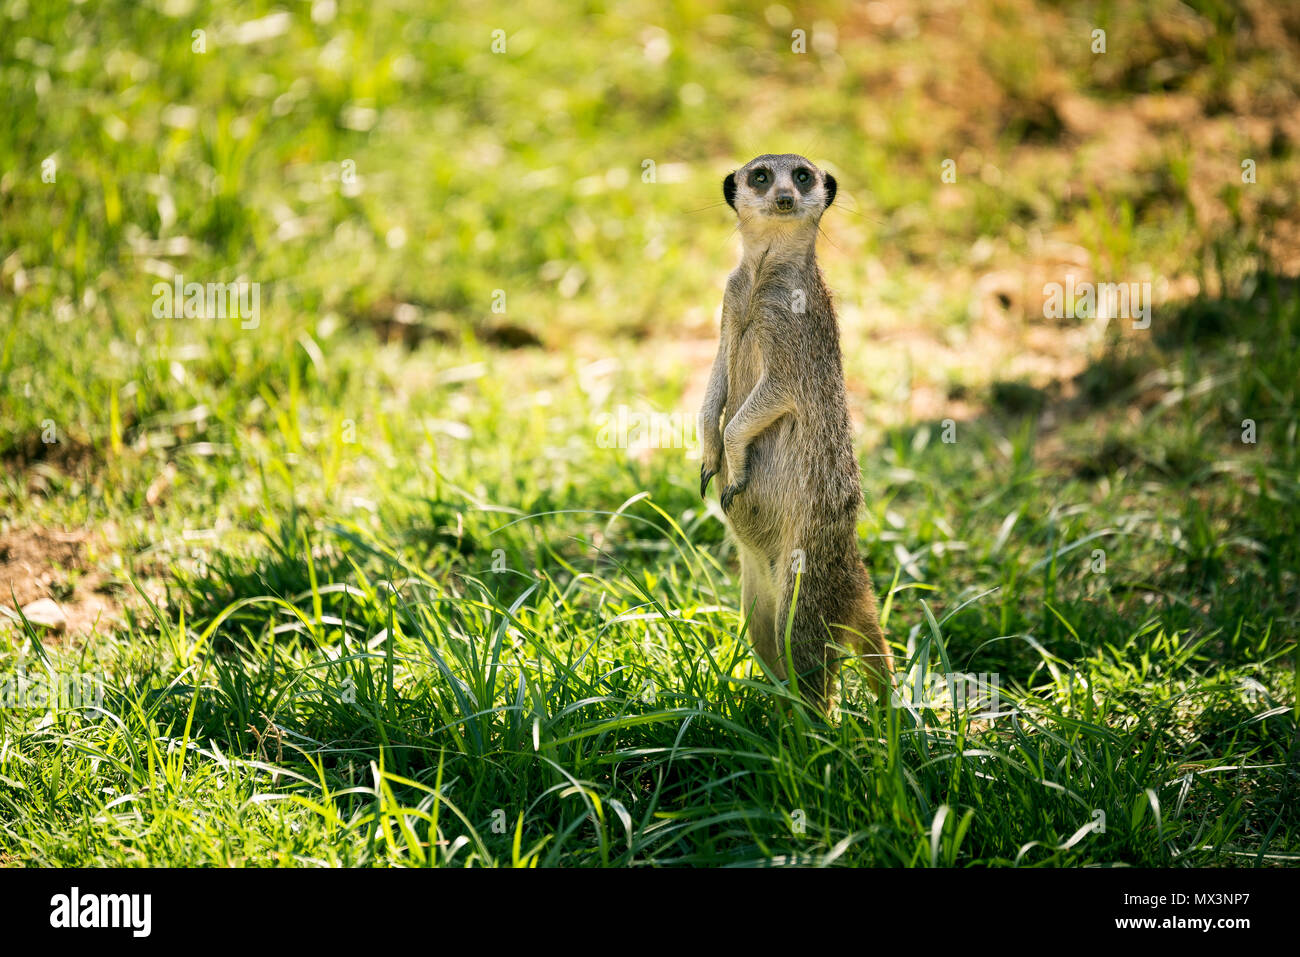 One meerkat on a watch standing in a meadow. - Stock Image